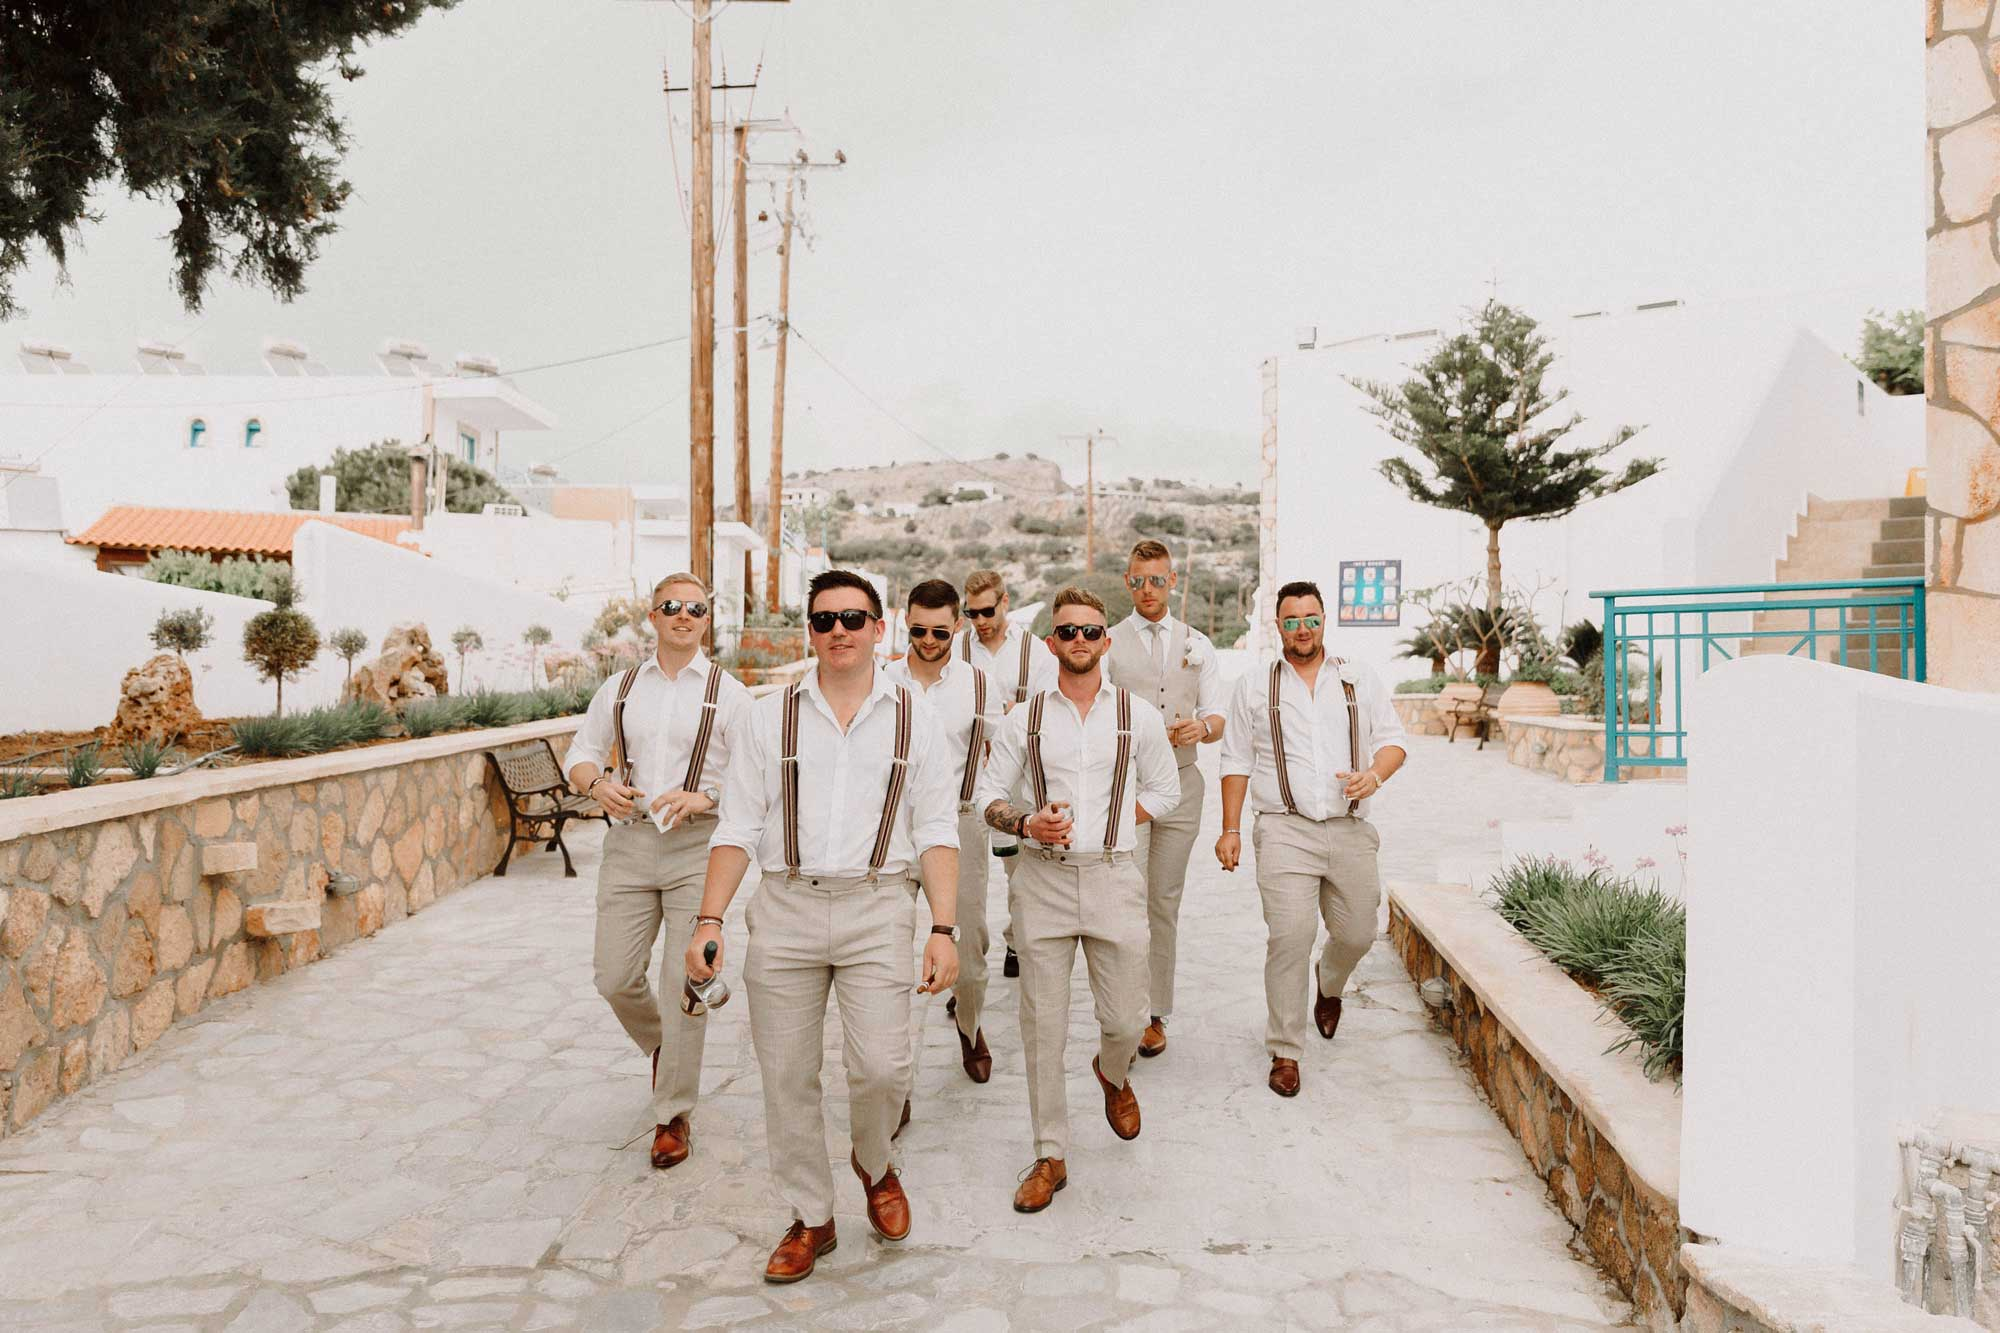 rhodes-wedding-photographer-destination-elopement-pefkos-ochi-weddings-philisophia-groomsmen.jpg